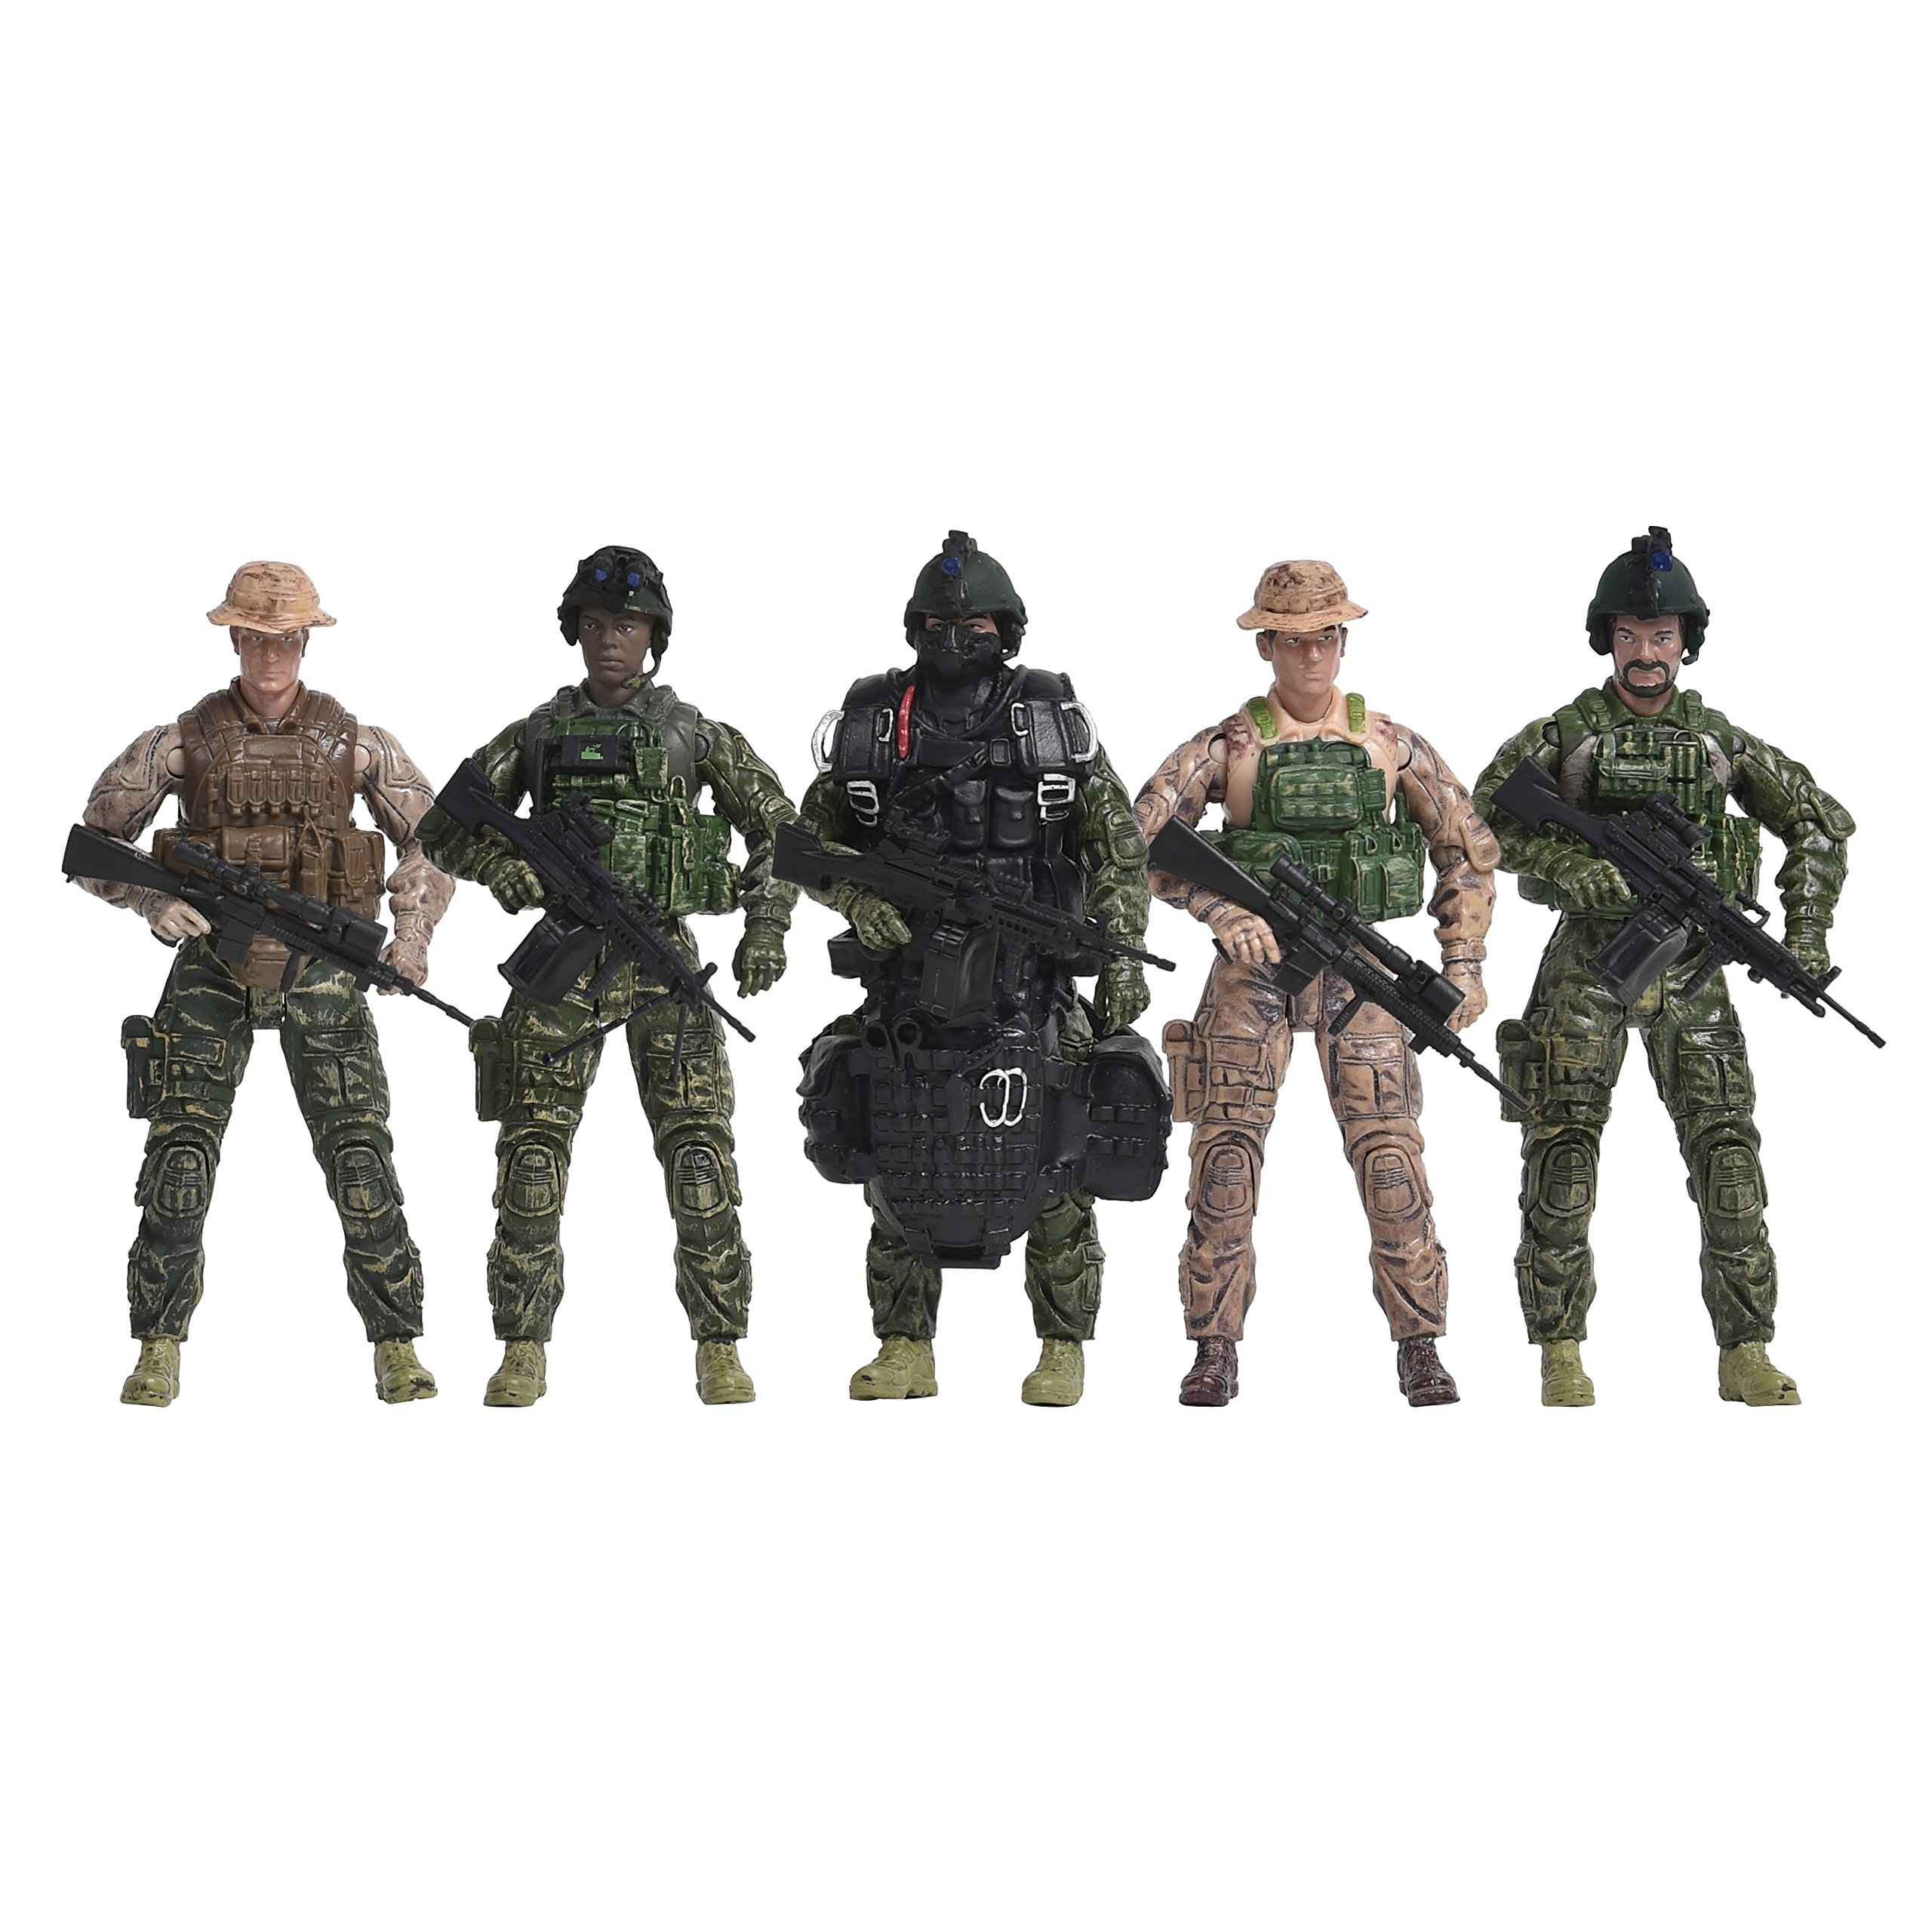 Navy Seals Action Figures – 5 Pack Military Toy Soldiers Playset with 14 Points of Articulation | Realistic Accessories (101837)